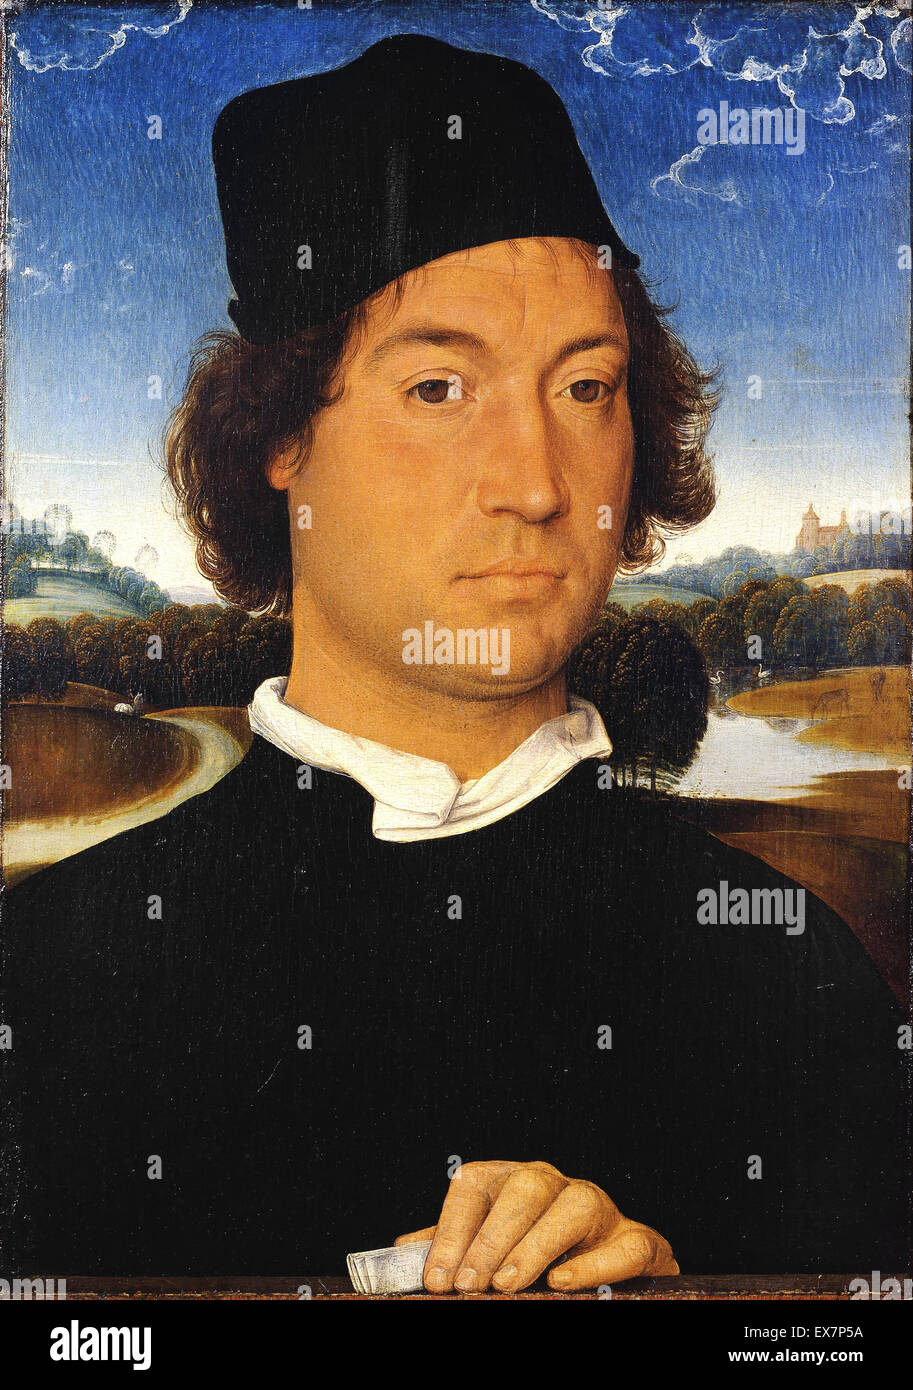 Hans Memling, Portrait of an Unknown Man with a Letter 1485-1489 Oil on panel. Uffizi Gallery, Florence, Italy. Stock Photo